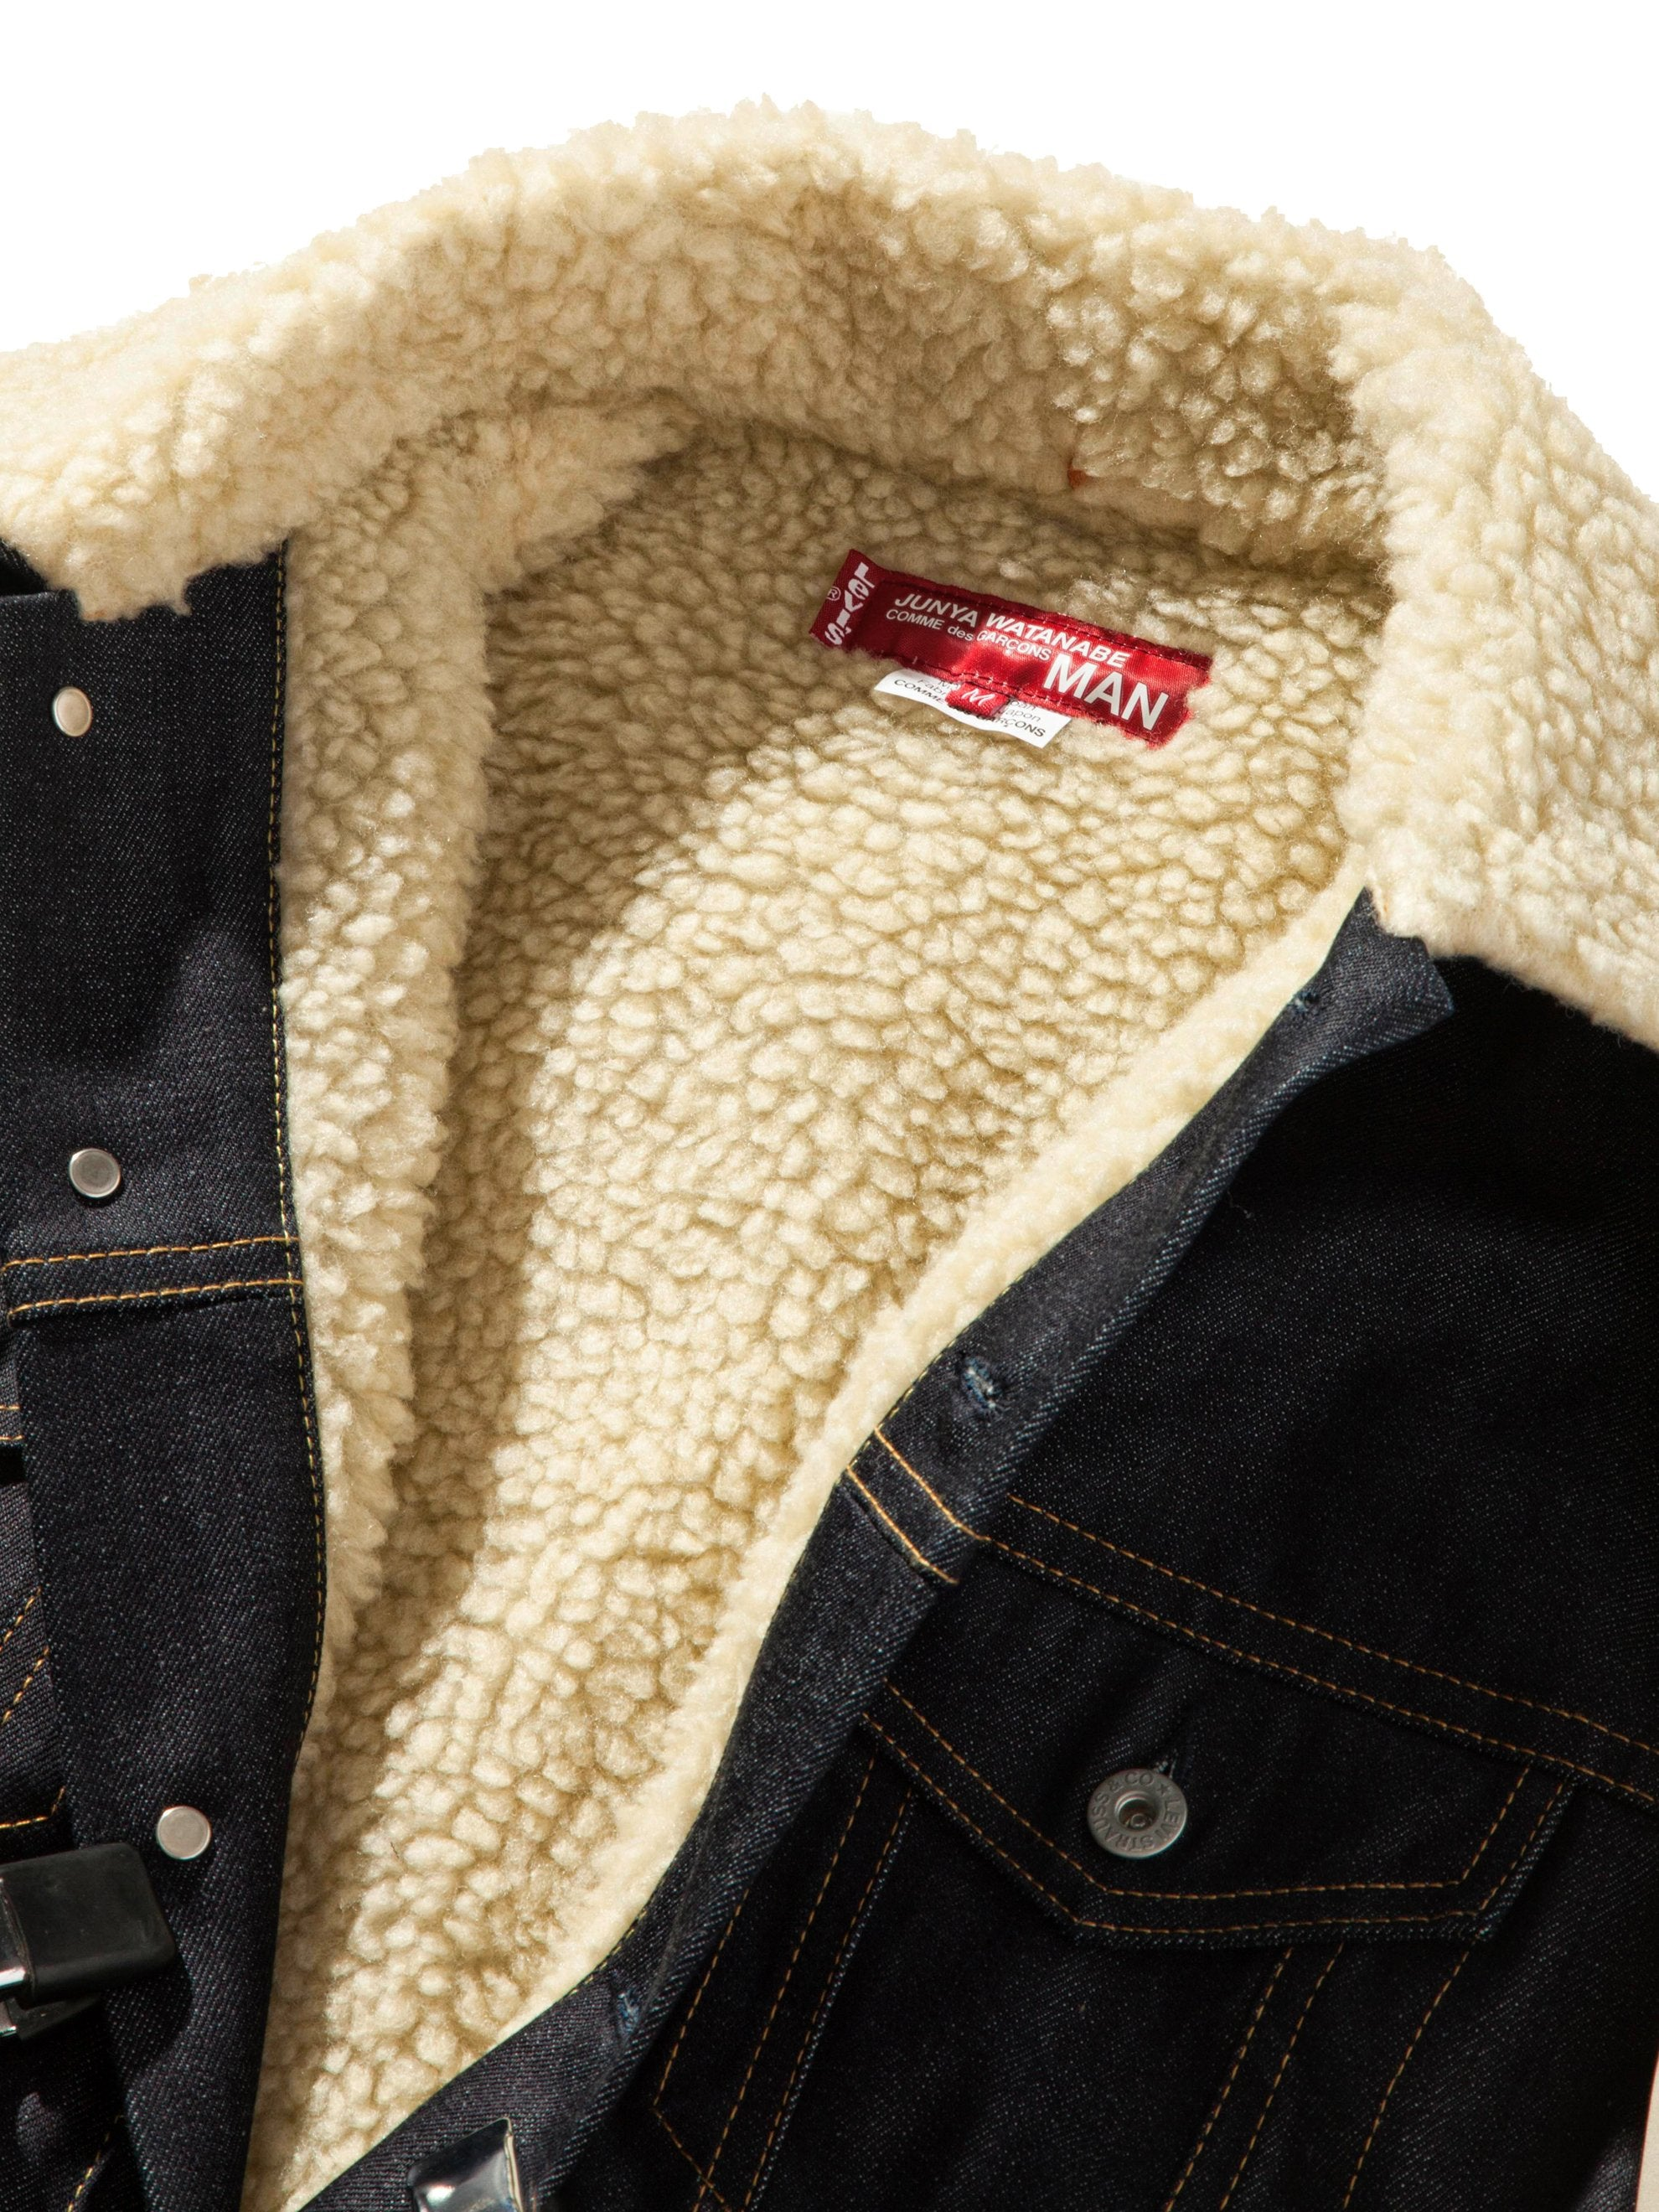 L Shearling Levis Denim Jacket 8